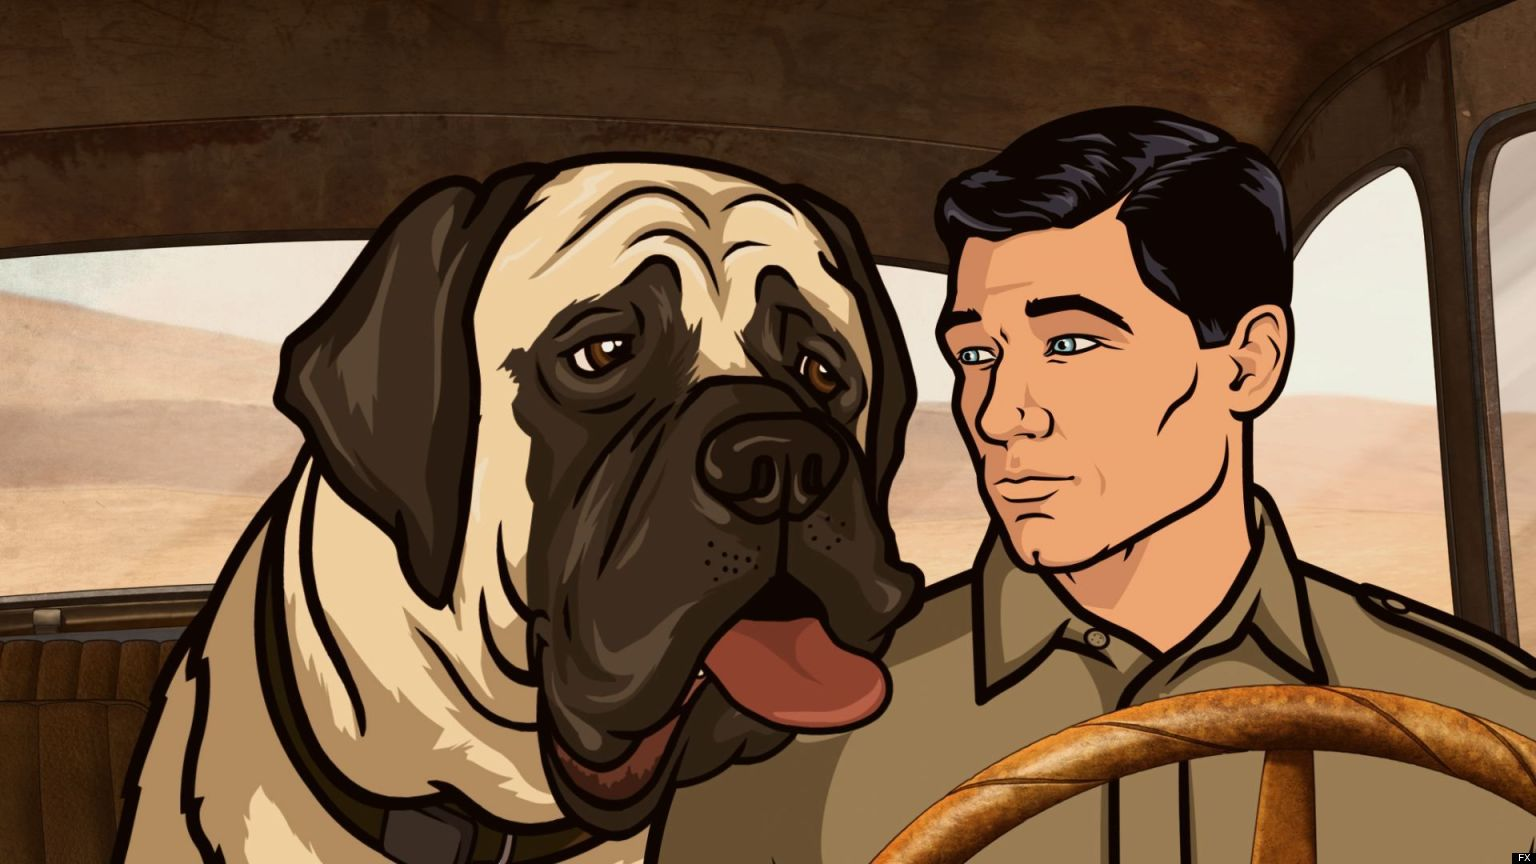 Archer fxx series ending no season 11 says creator - Archer episodes youtube ...